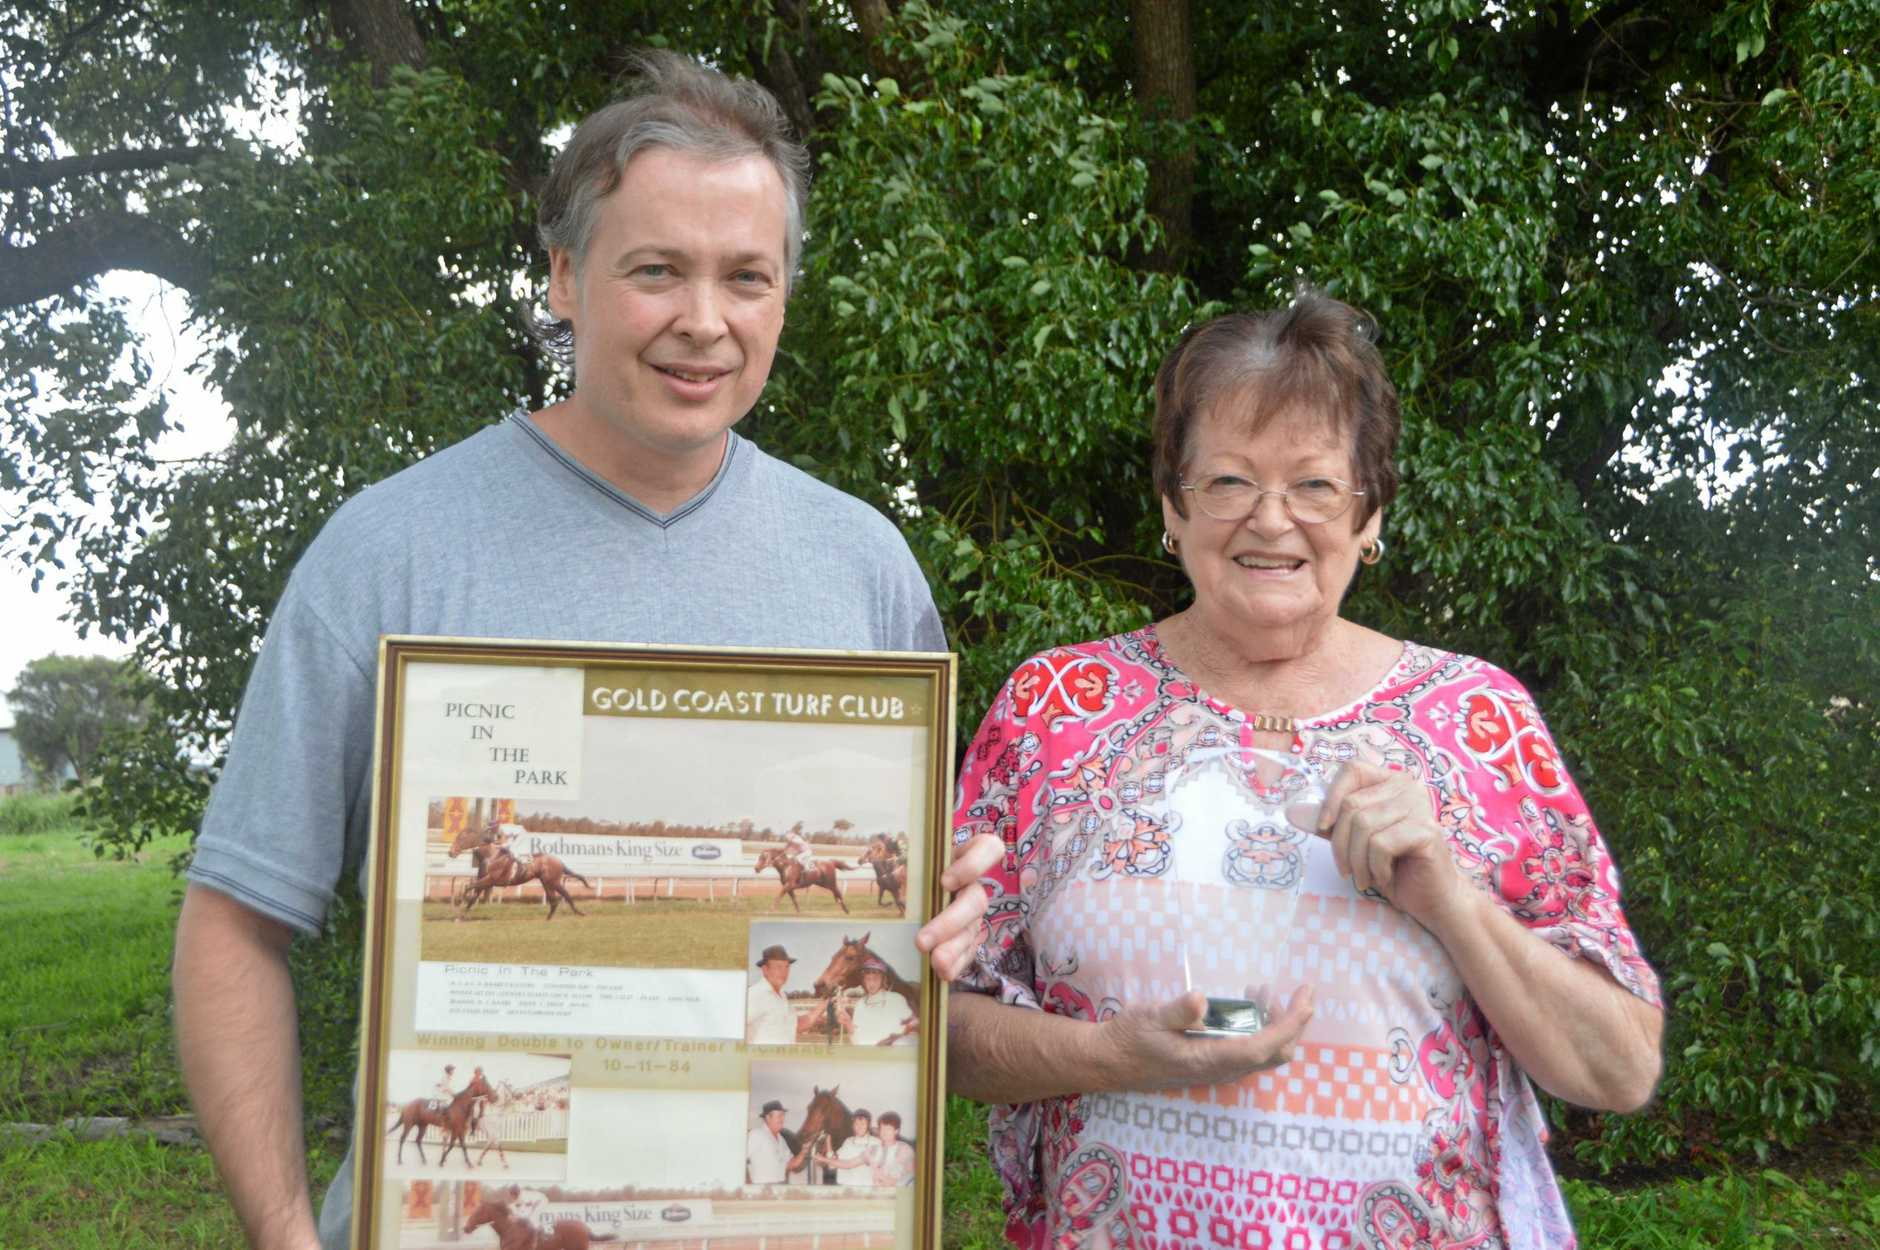 Wade and Colleen are proud of Picnic in the Park's induction into country racing's hall of fame.